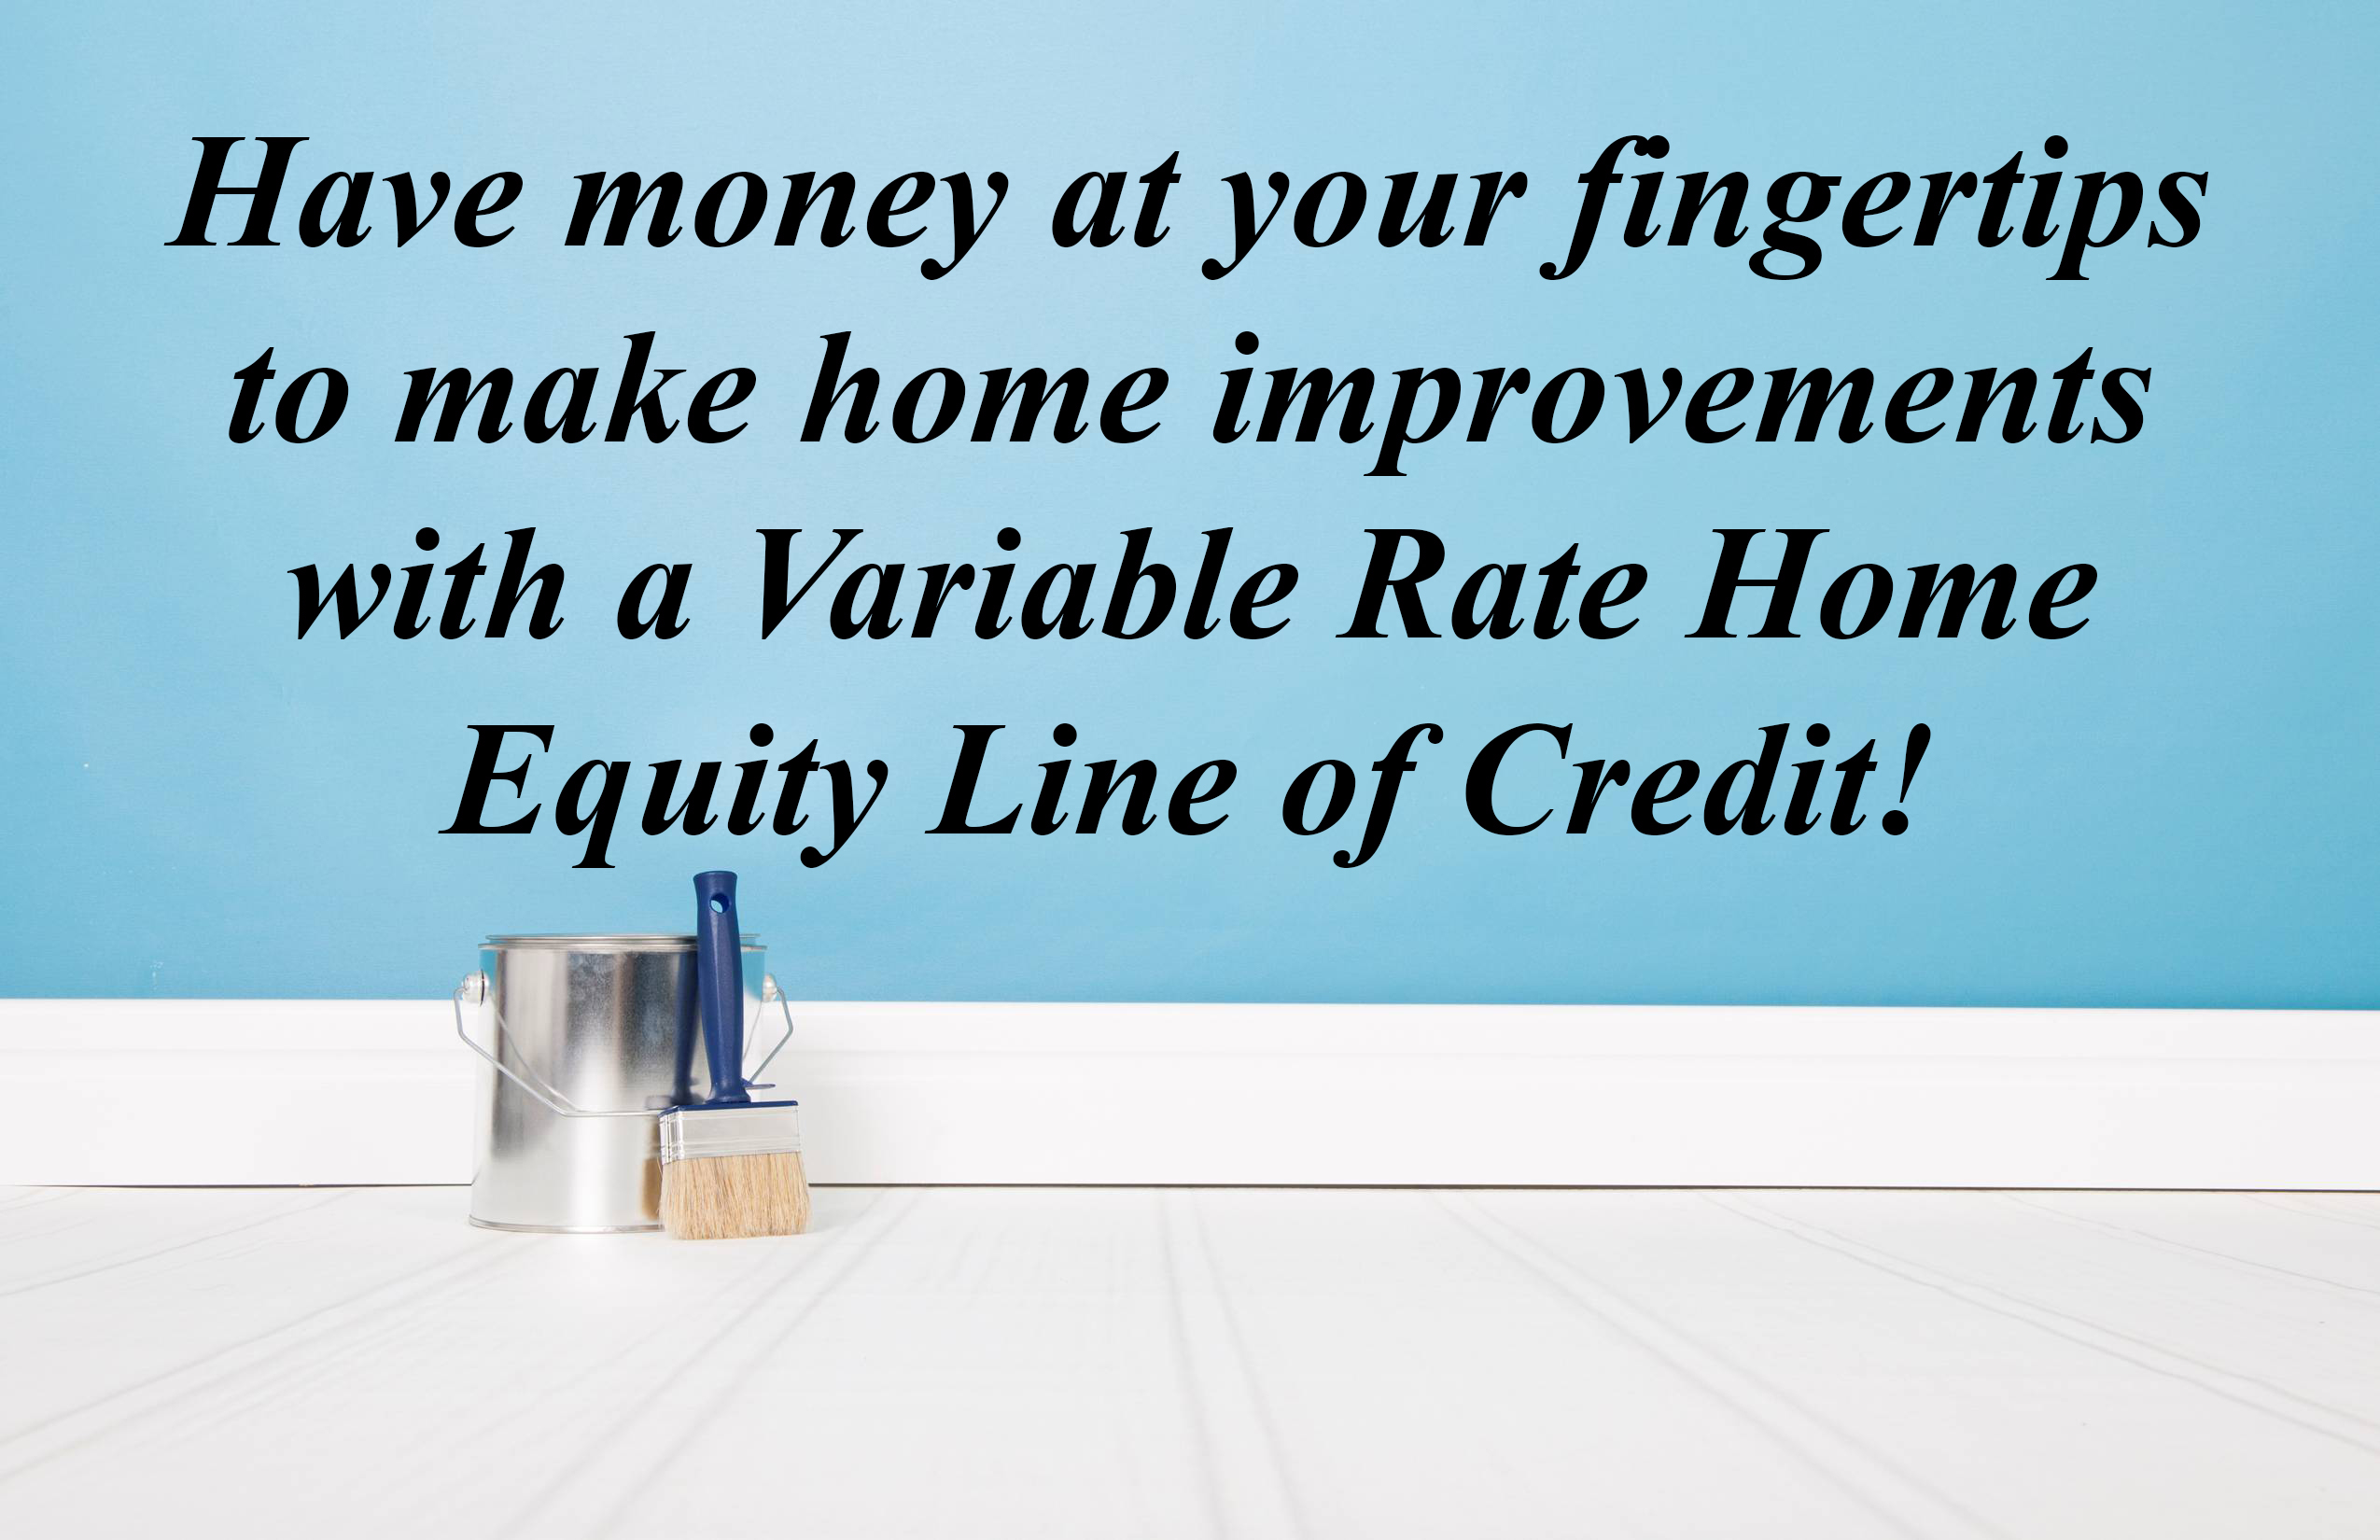 HAVE MONEY AT YOUR FINGERTIPS TO MAKE HOME IMPROVEMENTS WITH A VARIABLE RATE HOME EQUITY LINE OF CREDIT.